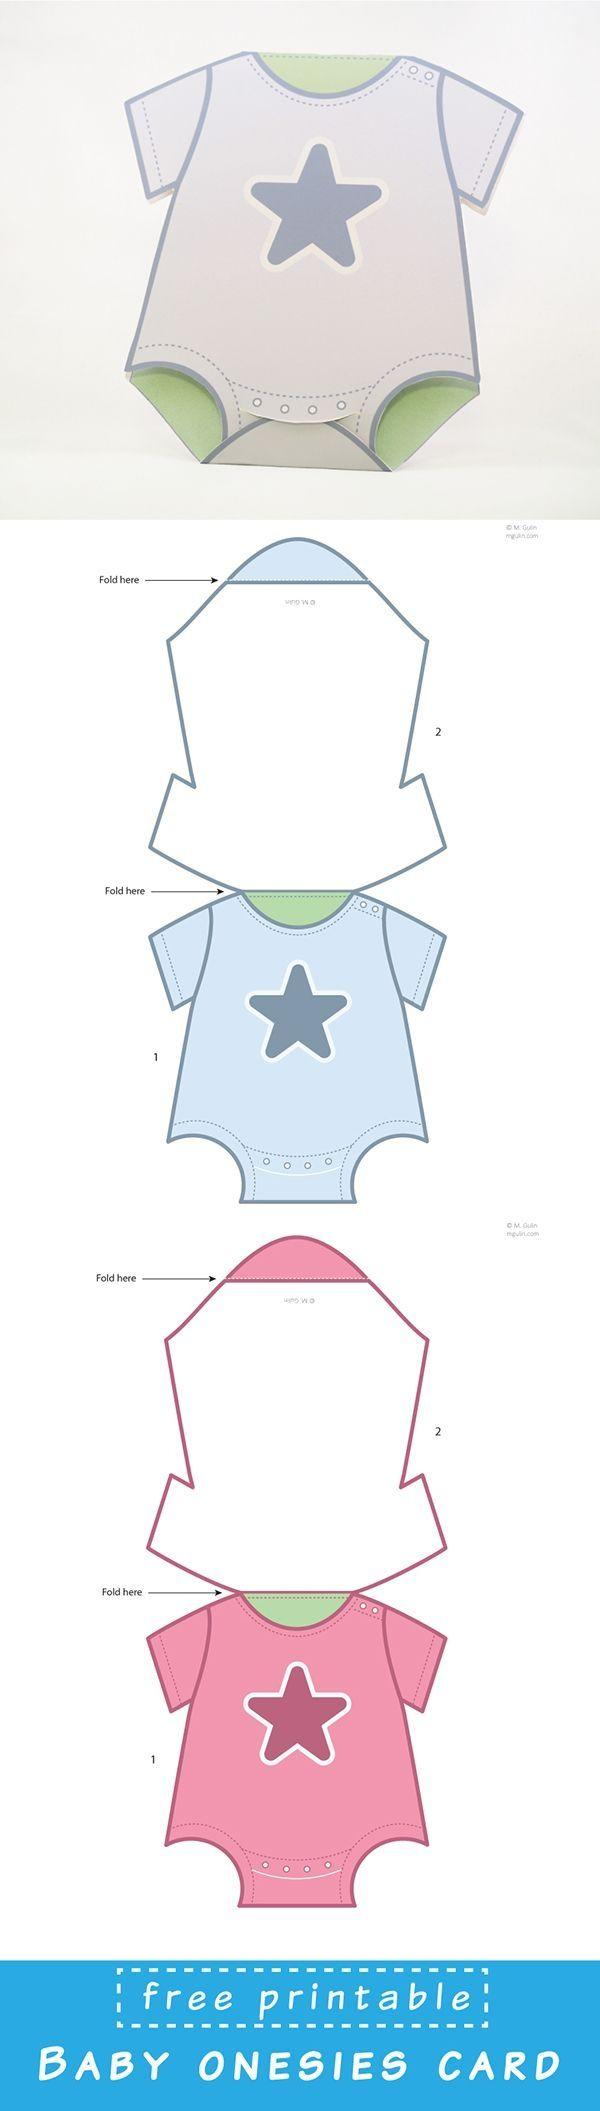 Free Printable Baby Onesies Card Template. Just Dowload And Assemble - Free Printable Onesie Pattern